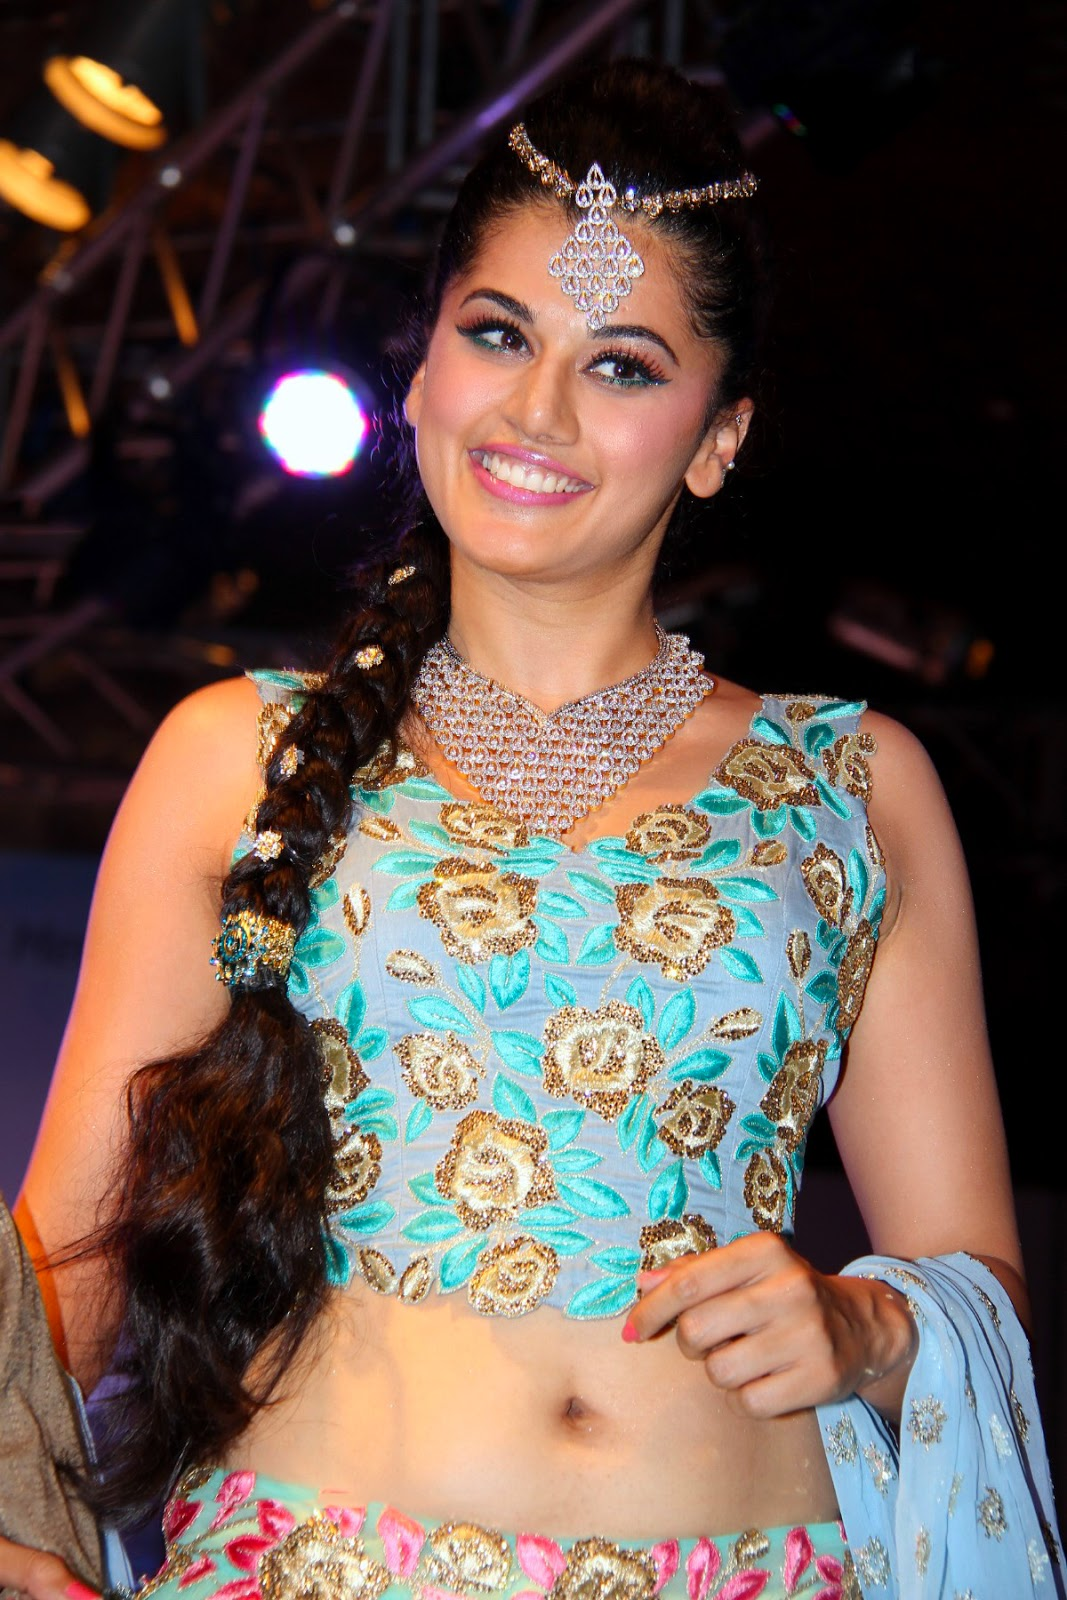 Taapsee Pannu's Deep Navel Stunning Look At Passionate Fashion Show